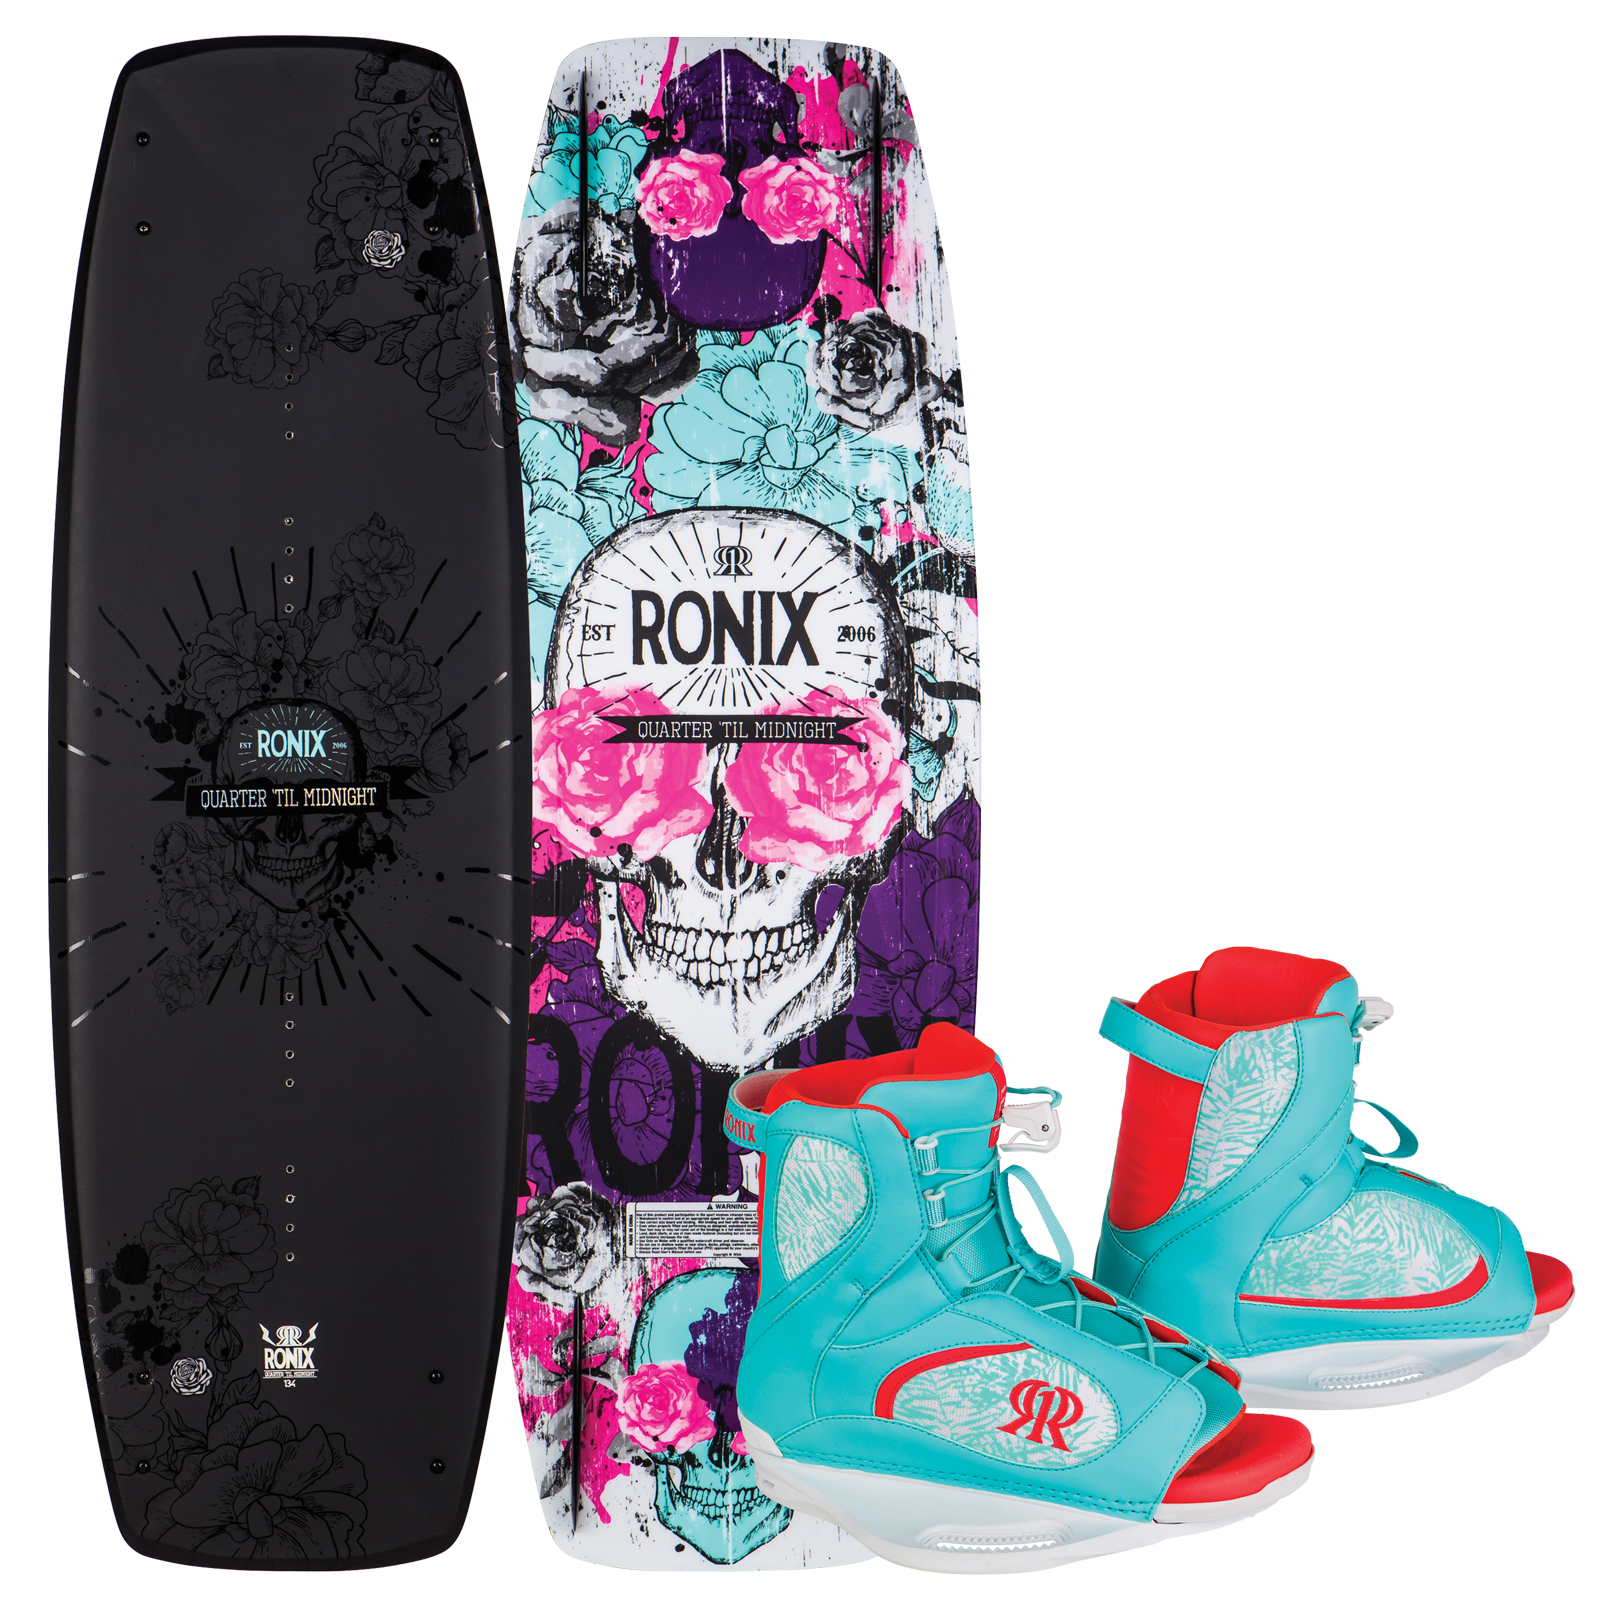 QUARTER 'TIL MIDNIGHT 129 W/ LUXE PACKAGE RONIX 2017